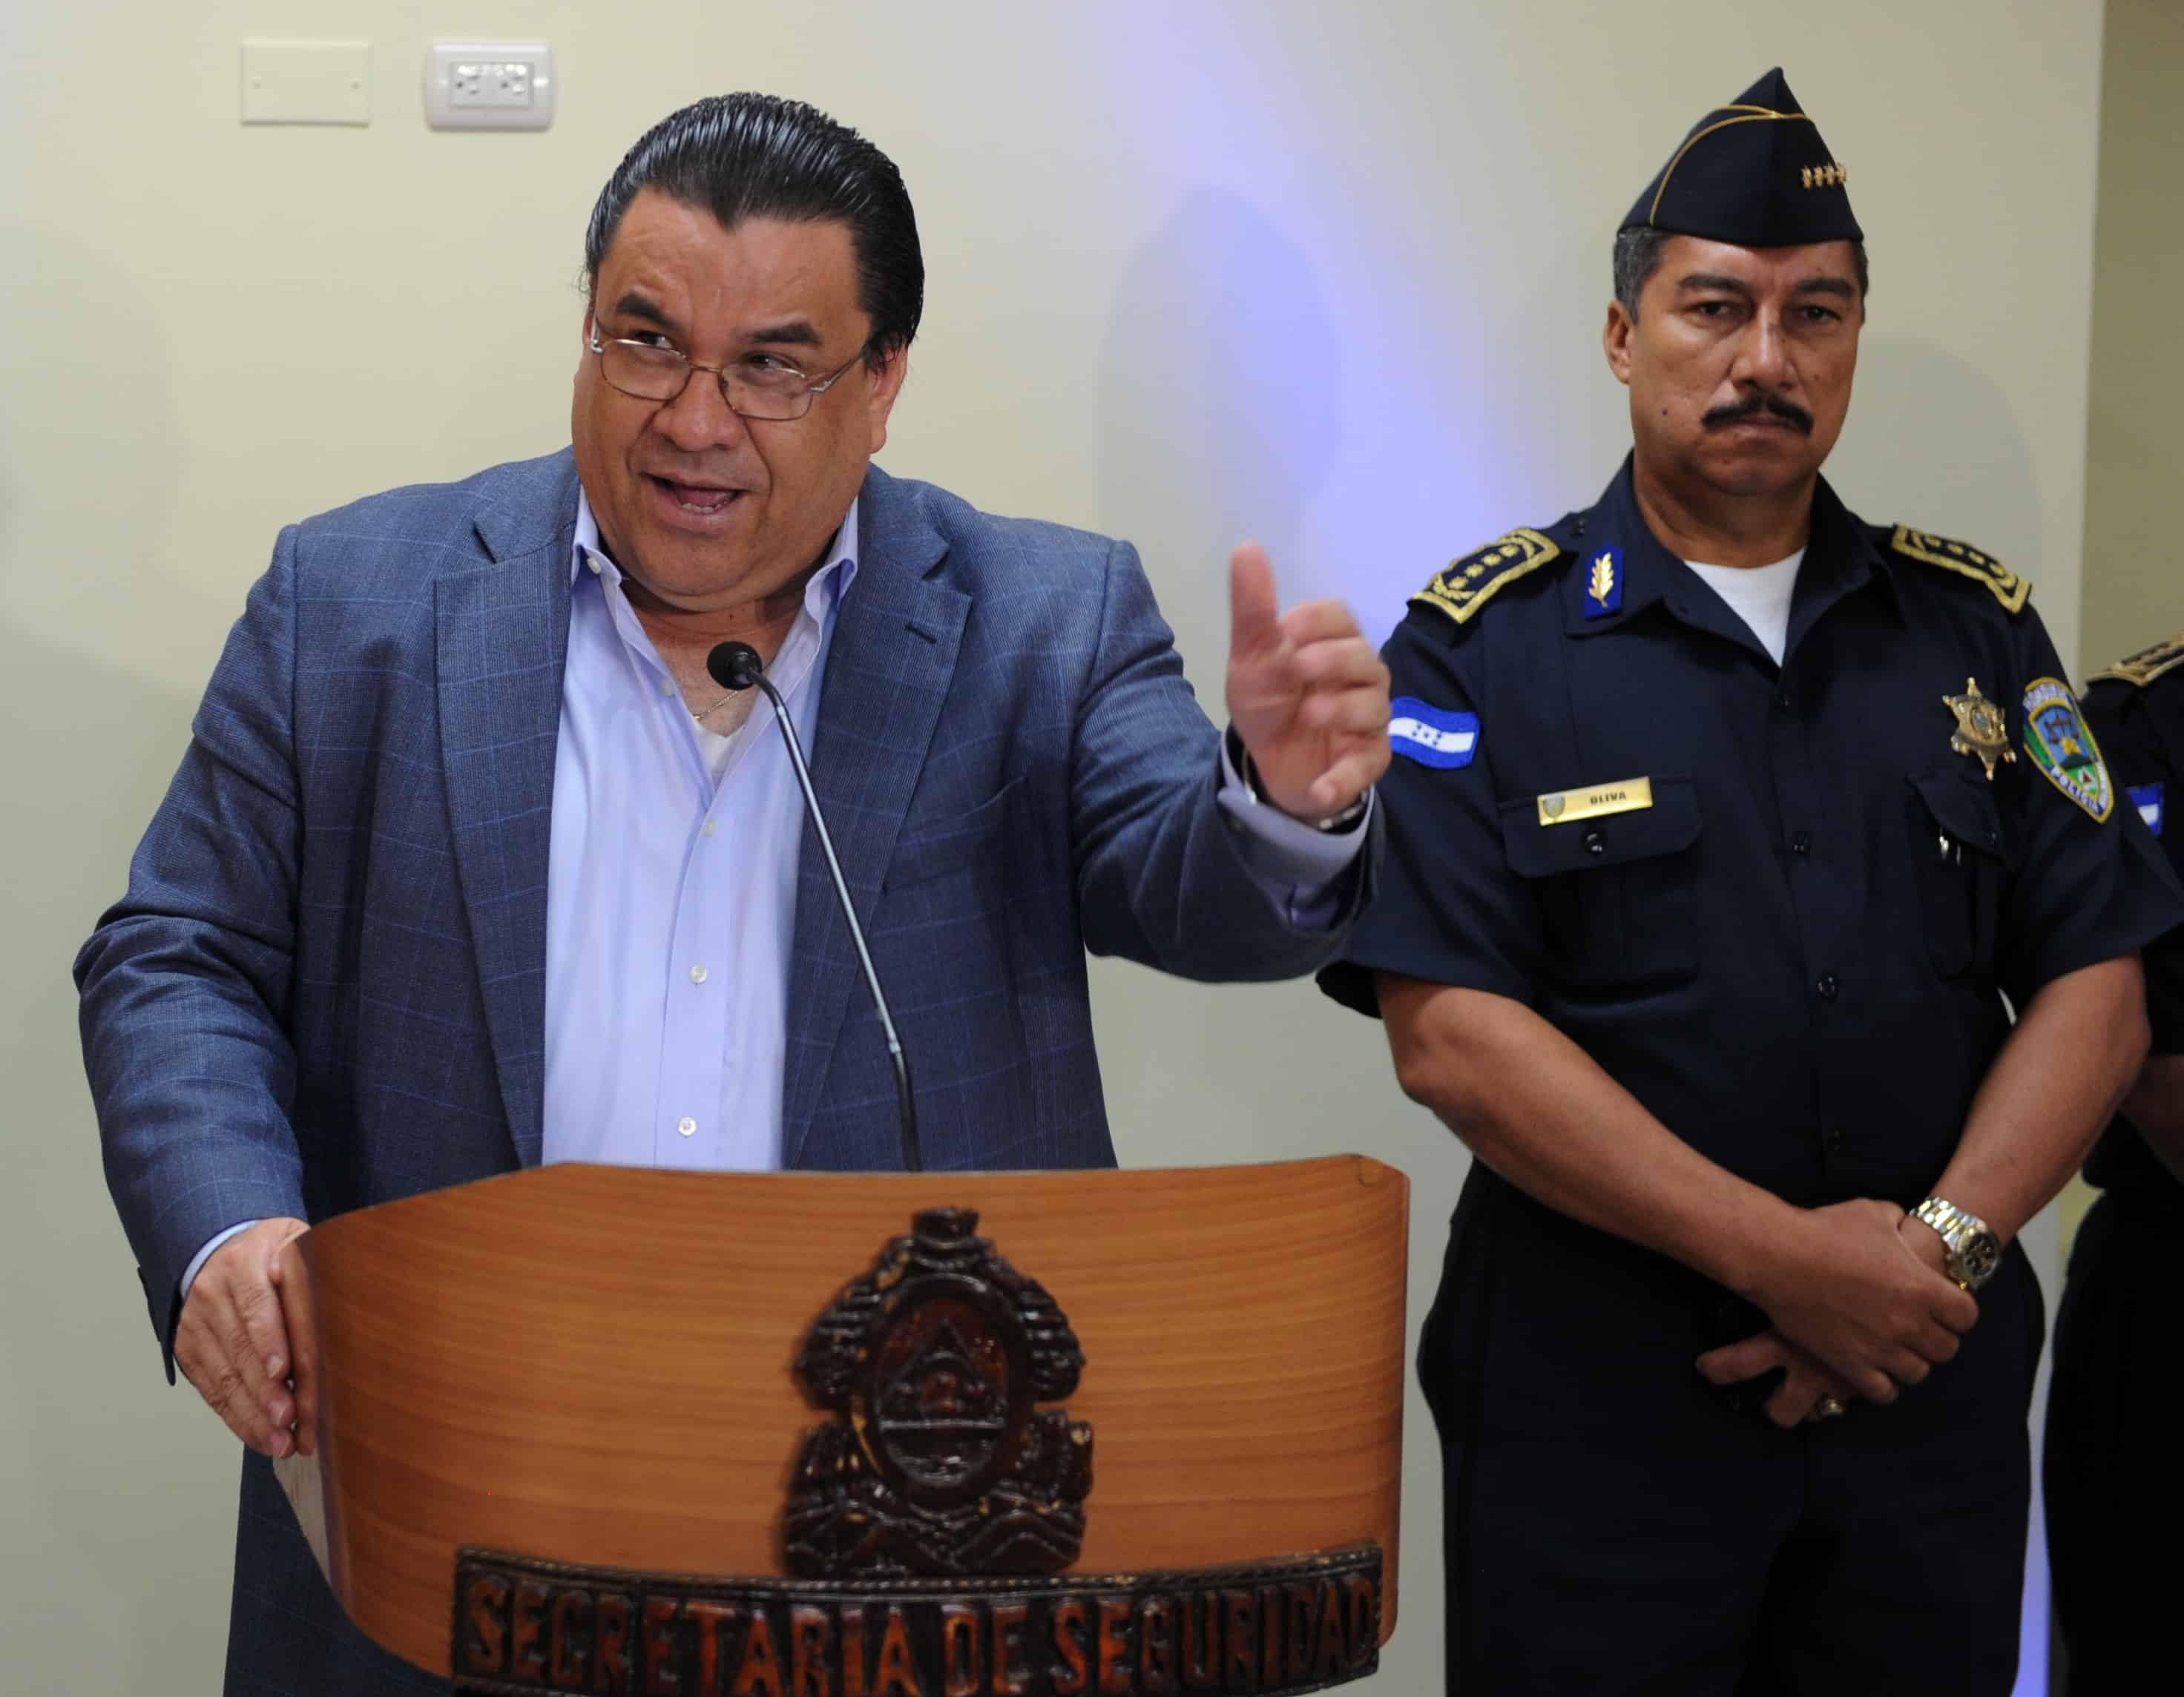 former Honduras Security Minister Arturo Corrales